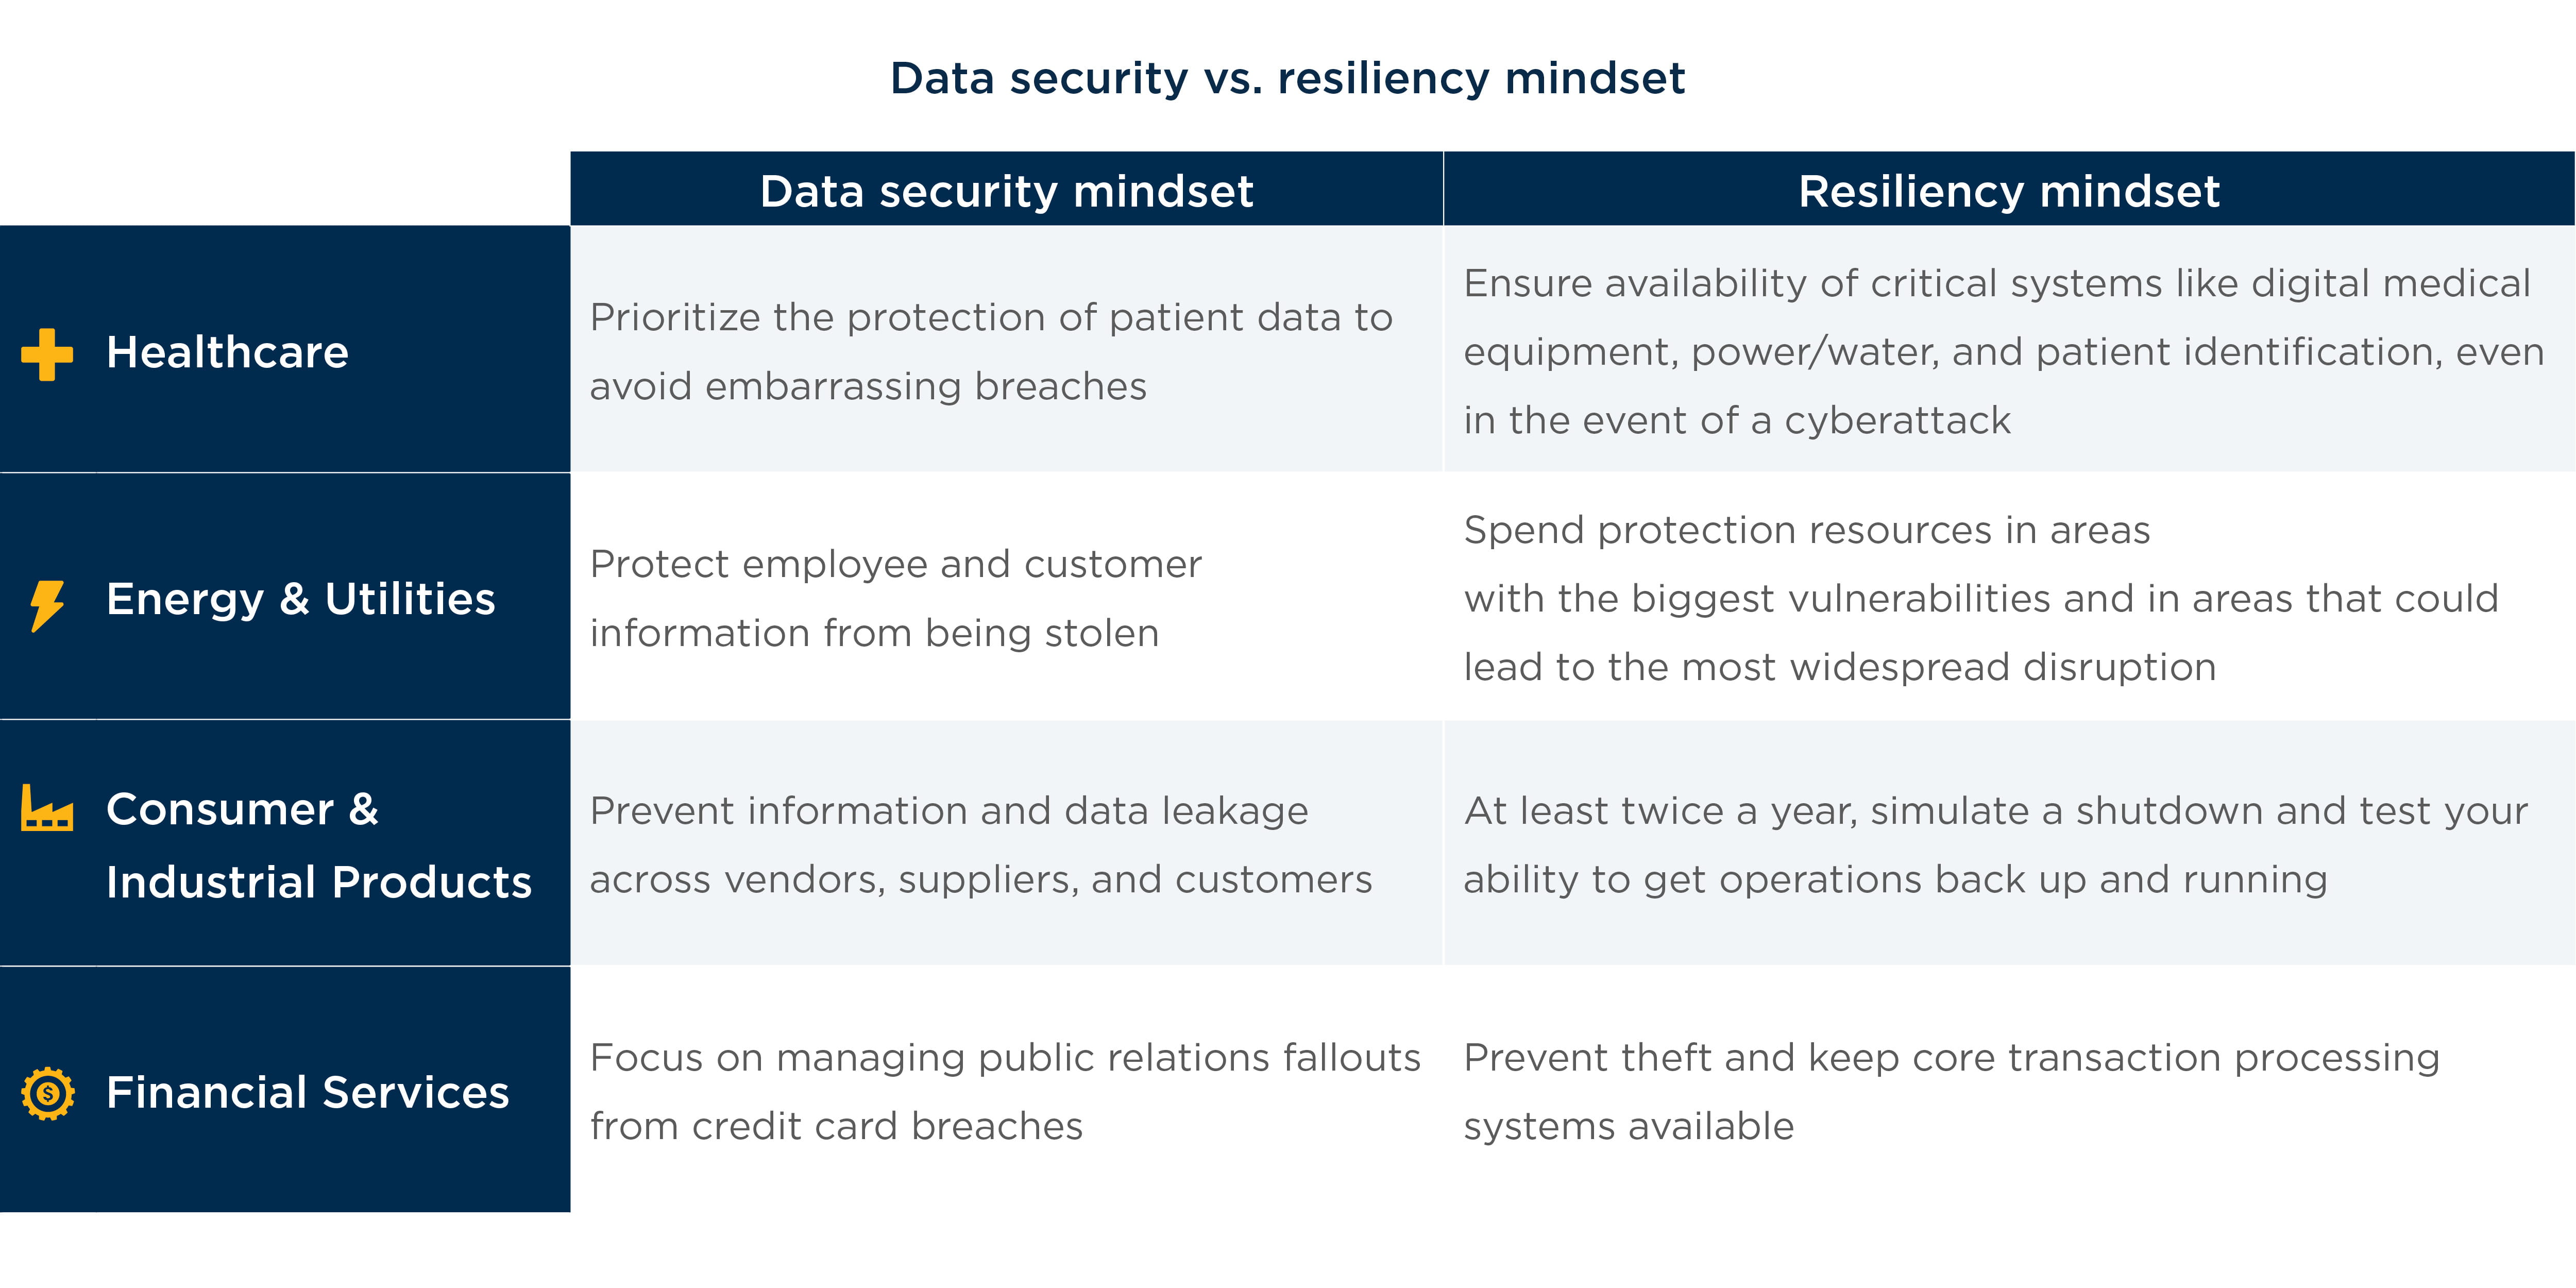 data security vs resiliency mindest